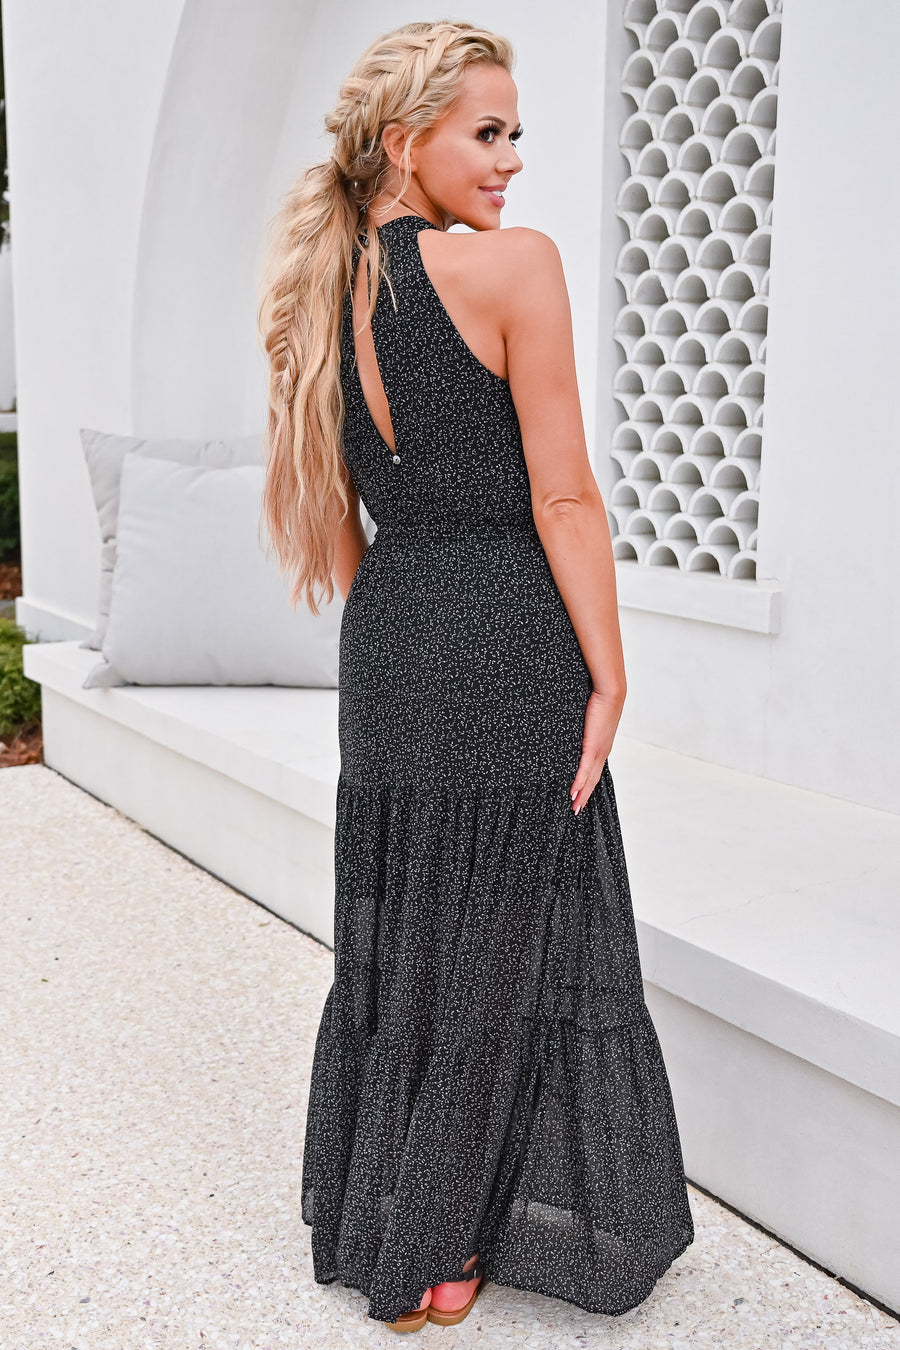 When The Sun Goes Down Maxi Dress - Black womens trendy halter neck maxi dress closet candy front